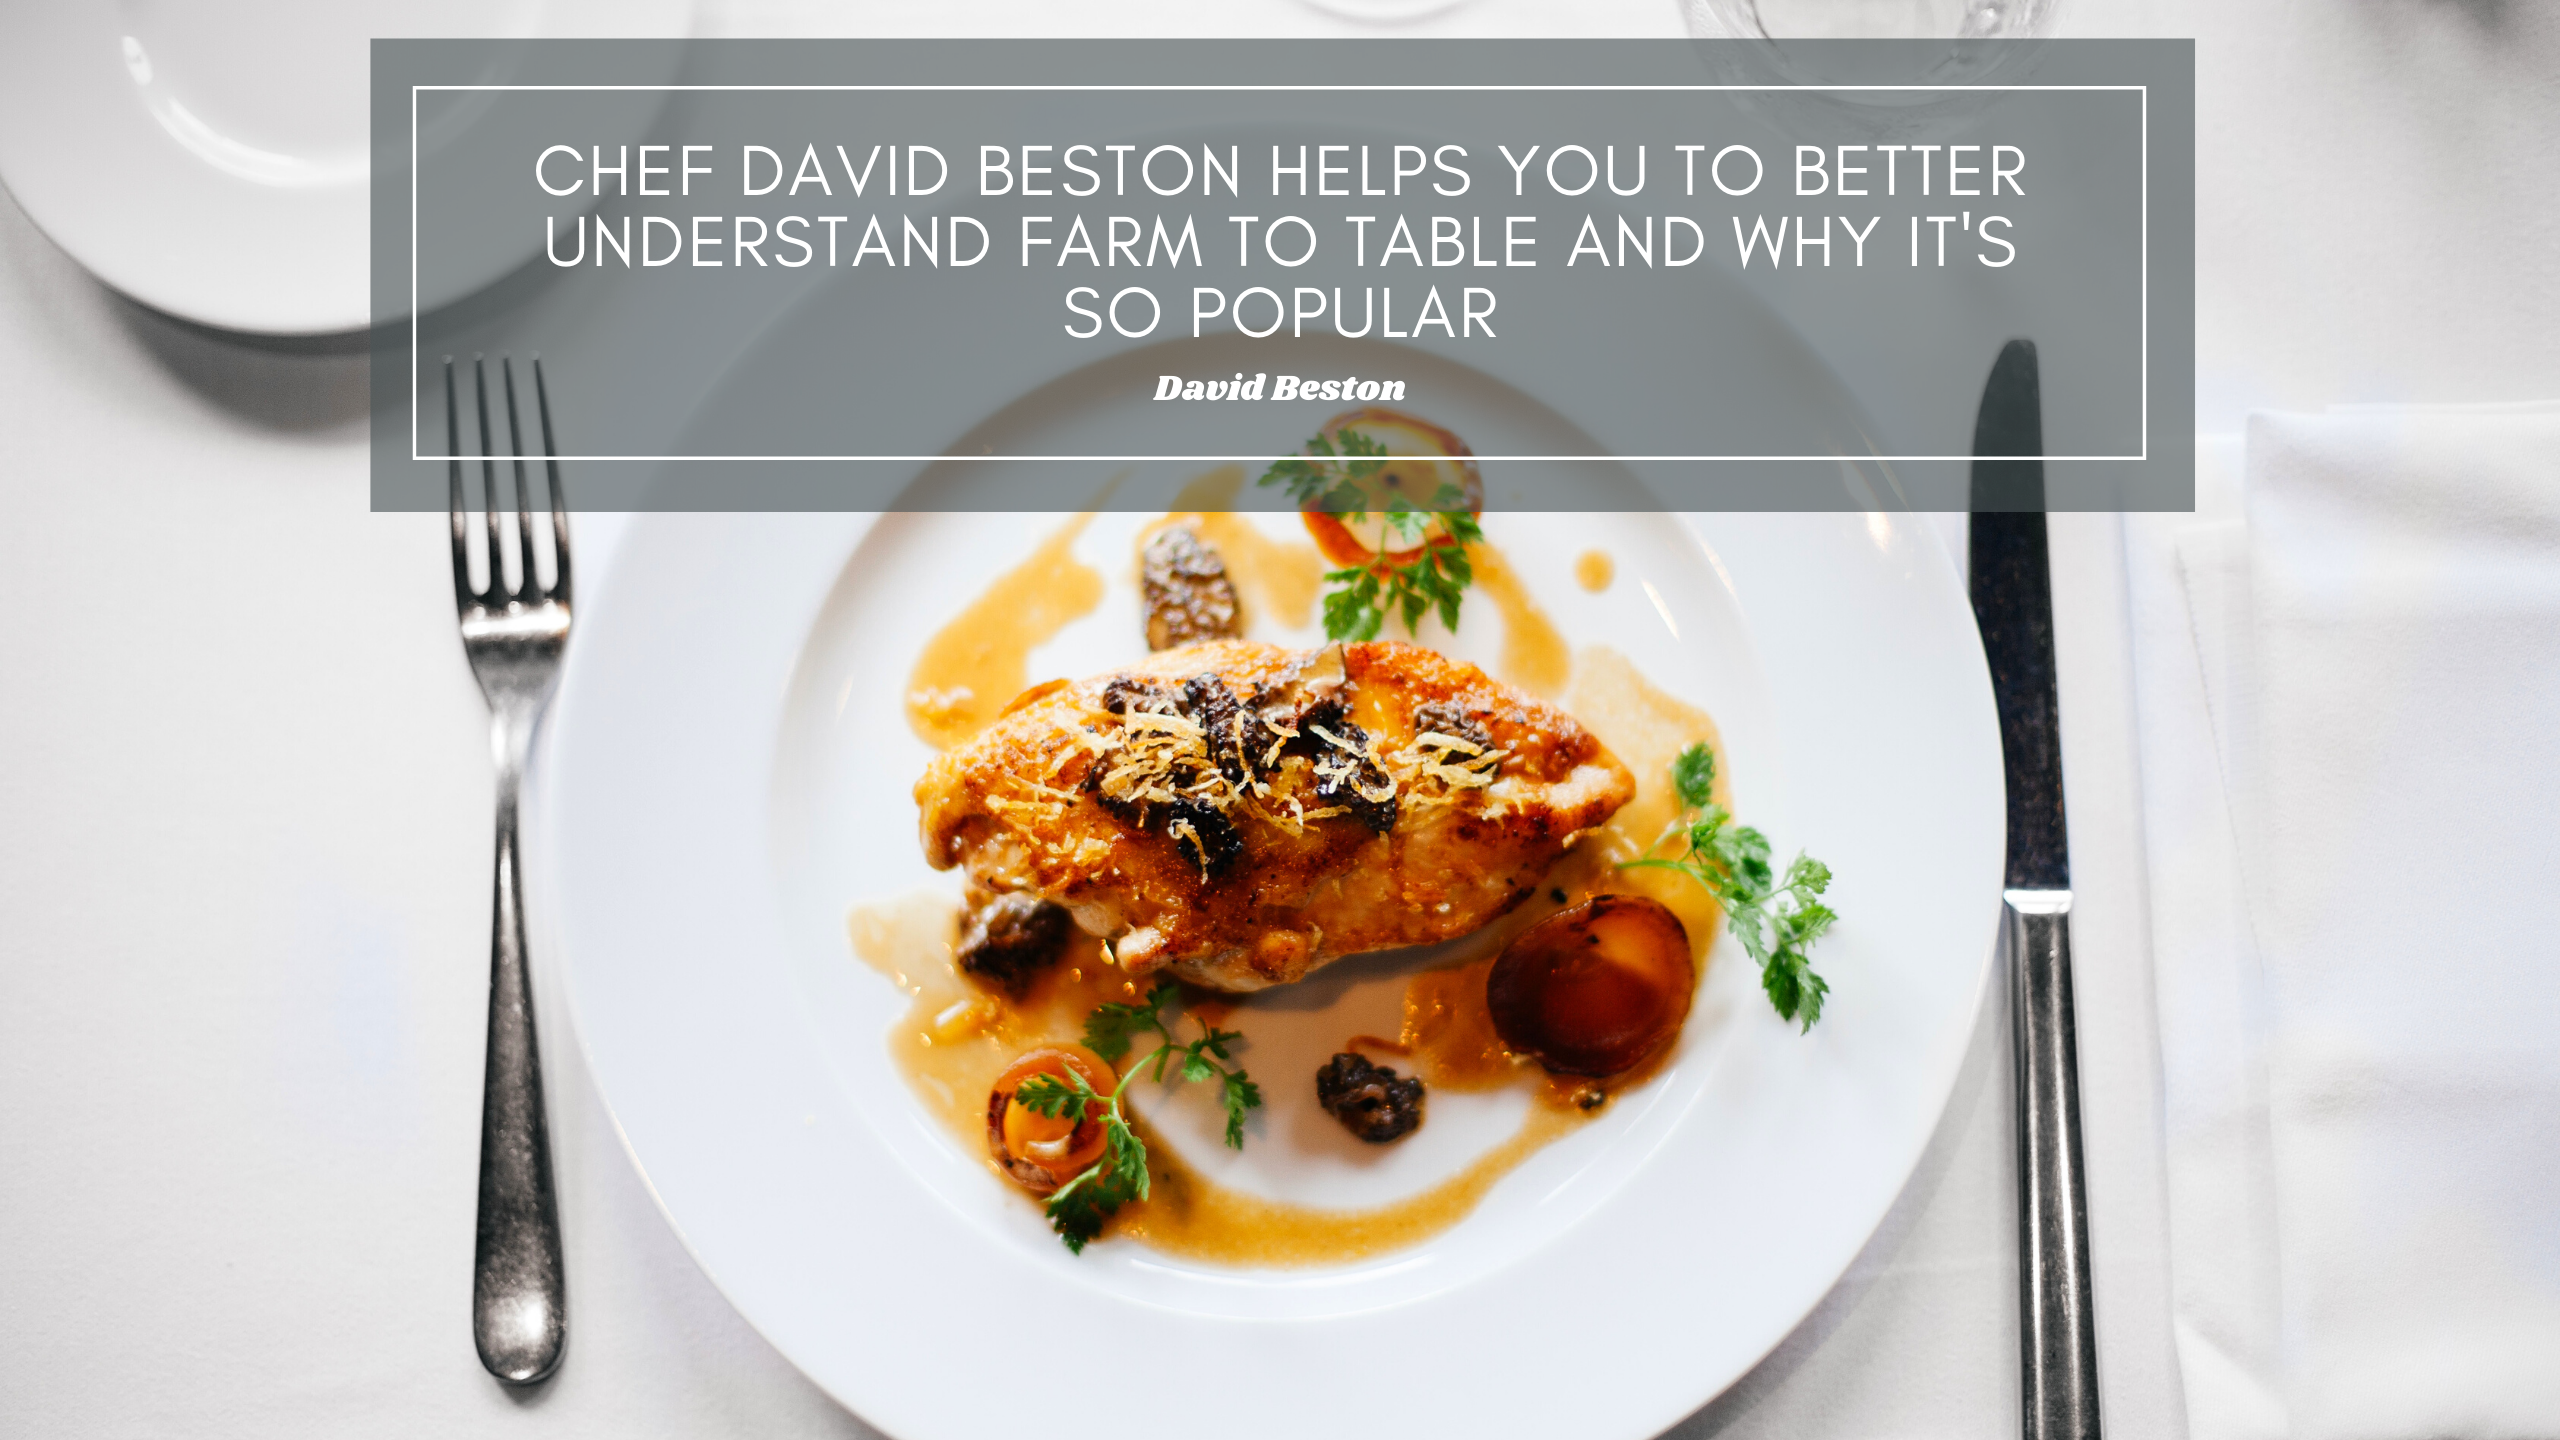 Chef David Beston Helps You to Better Understand Farm to Table and Why It's So Popular